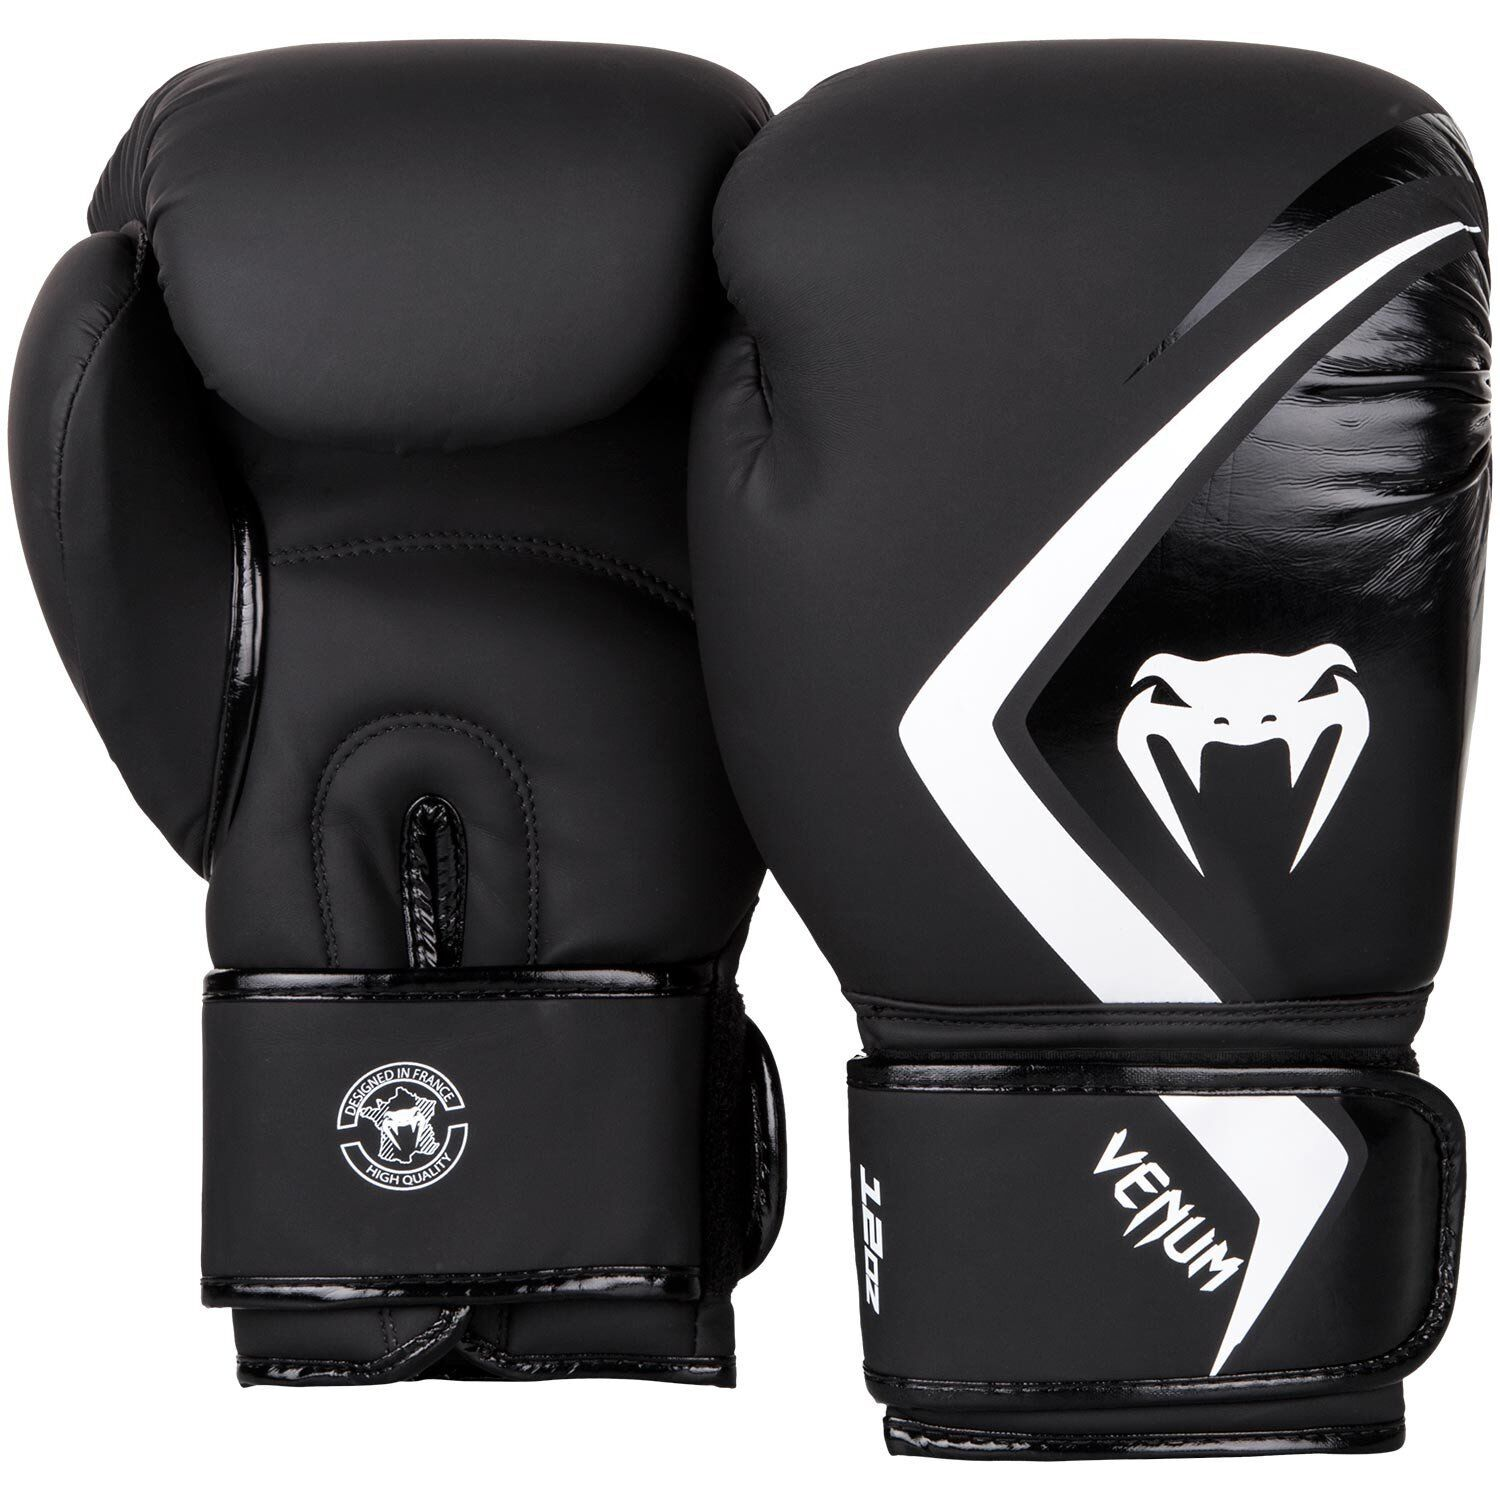 Details about Venum Boxing Gloves Contender 2 0 Black White Muay Thai  Sparring Kickboxing K1